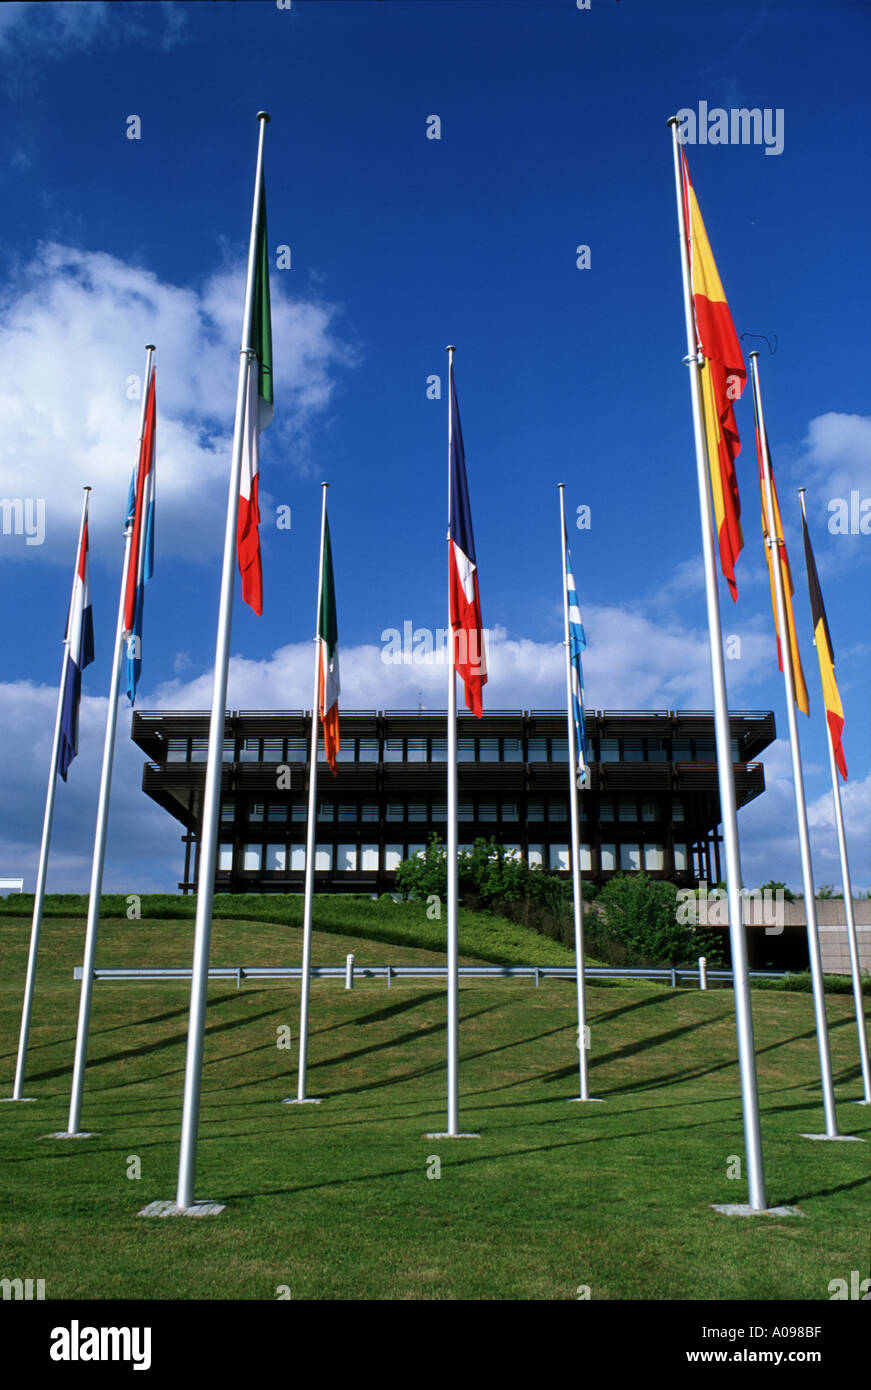 Flags of European countries in front of the old Building of the European Court of Justice in Luxembourg - Stock Image